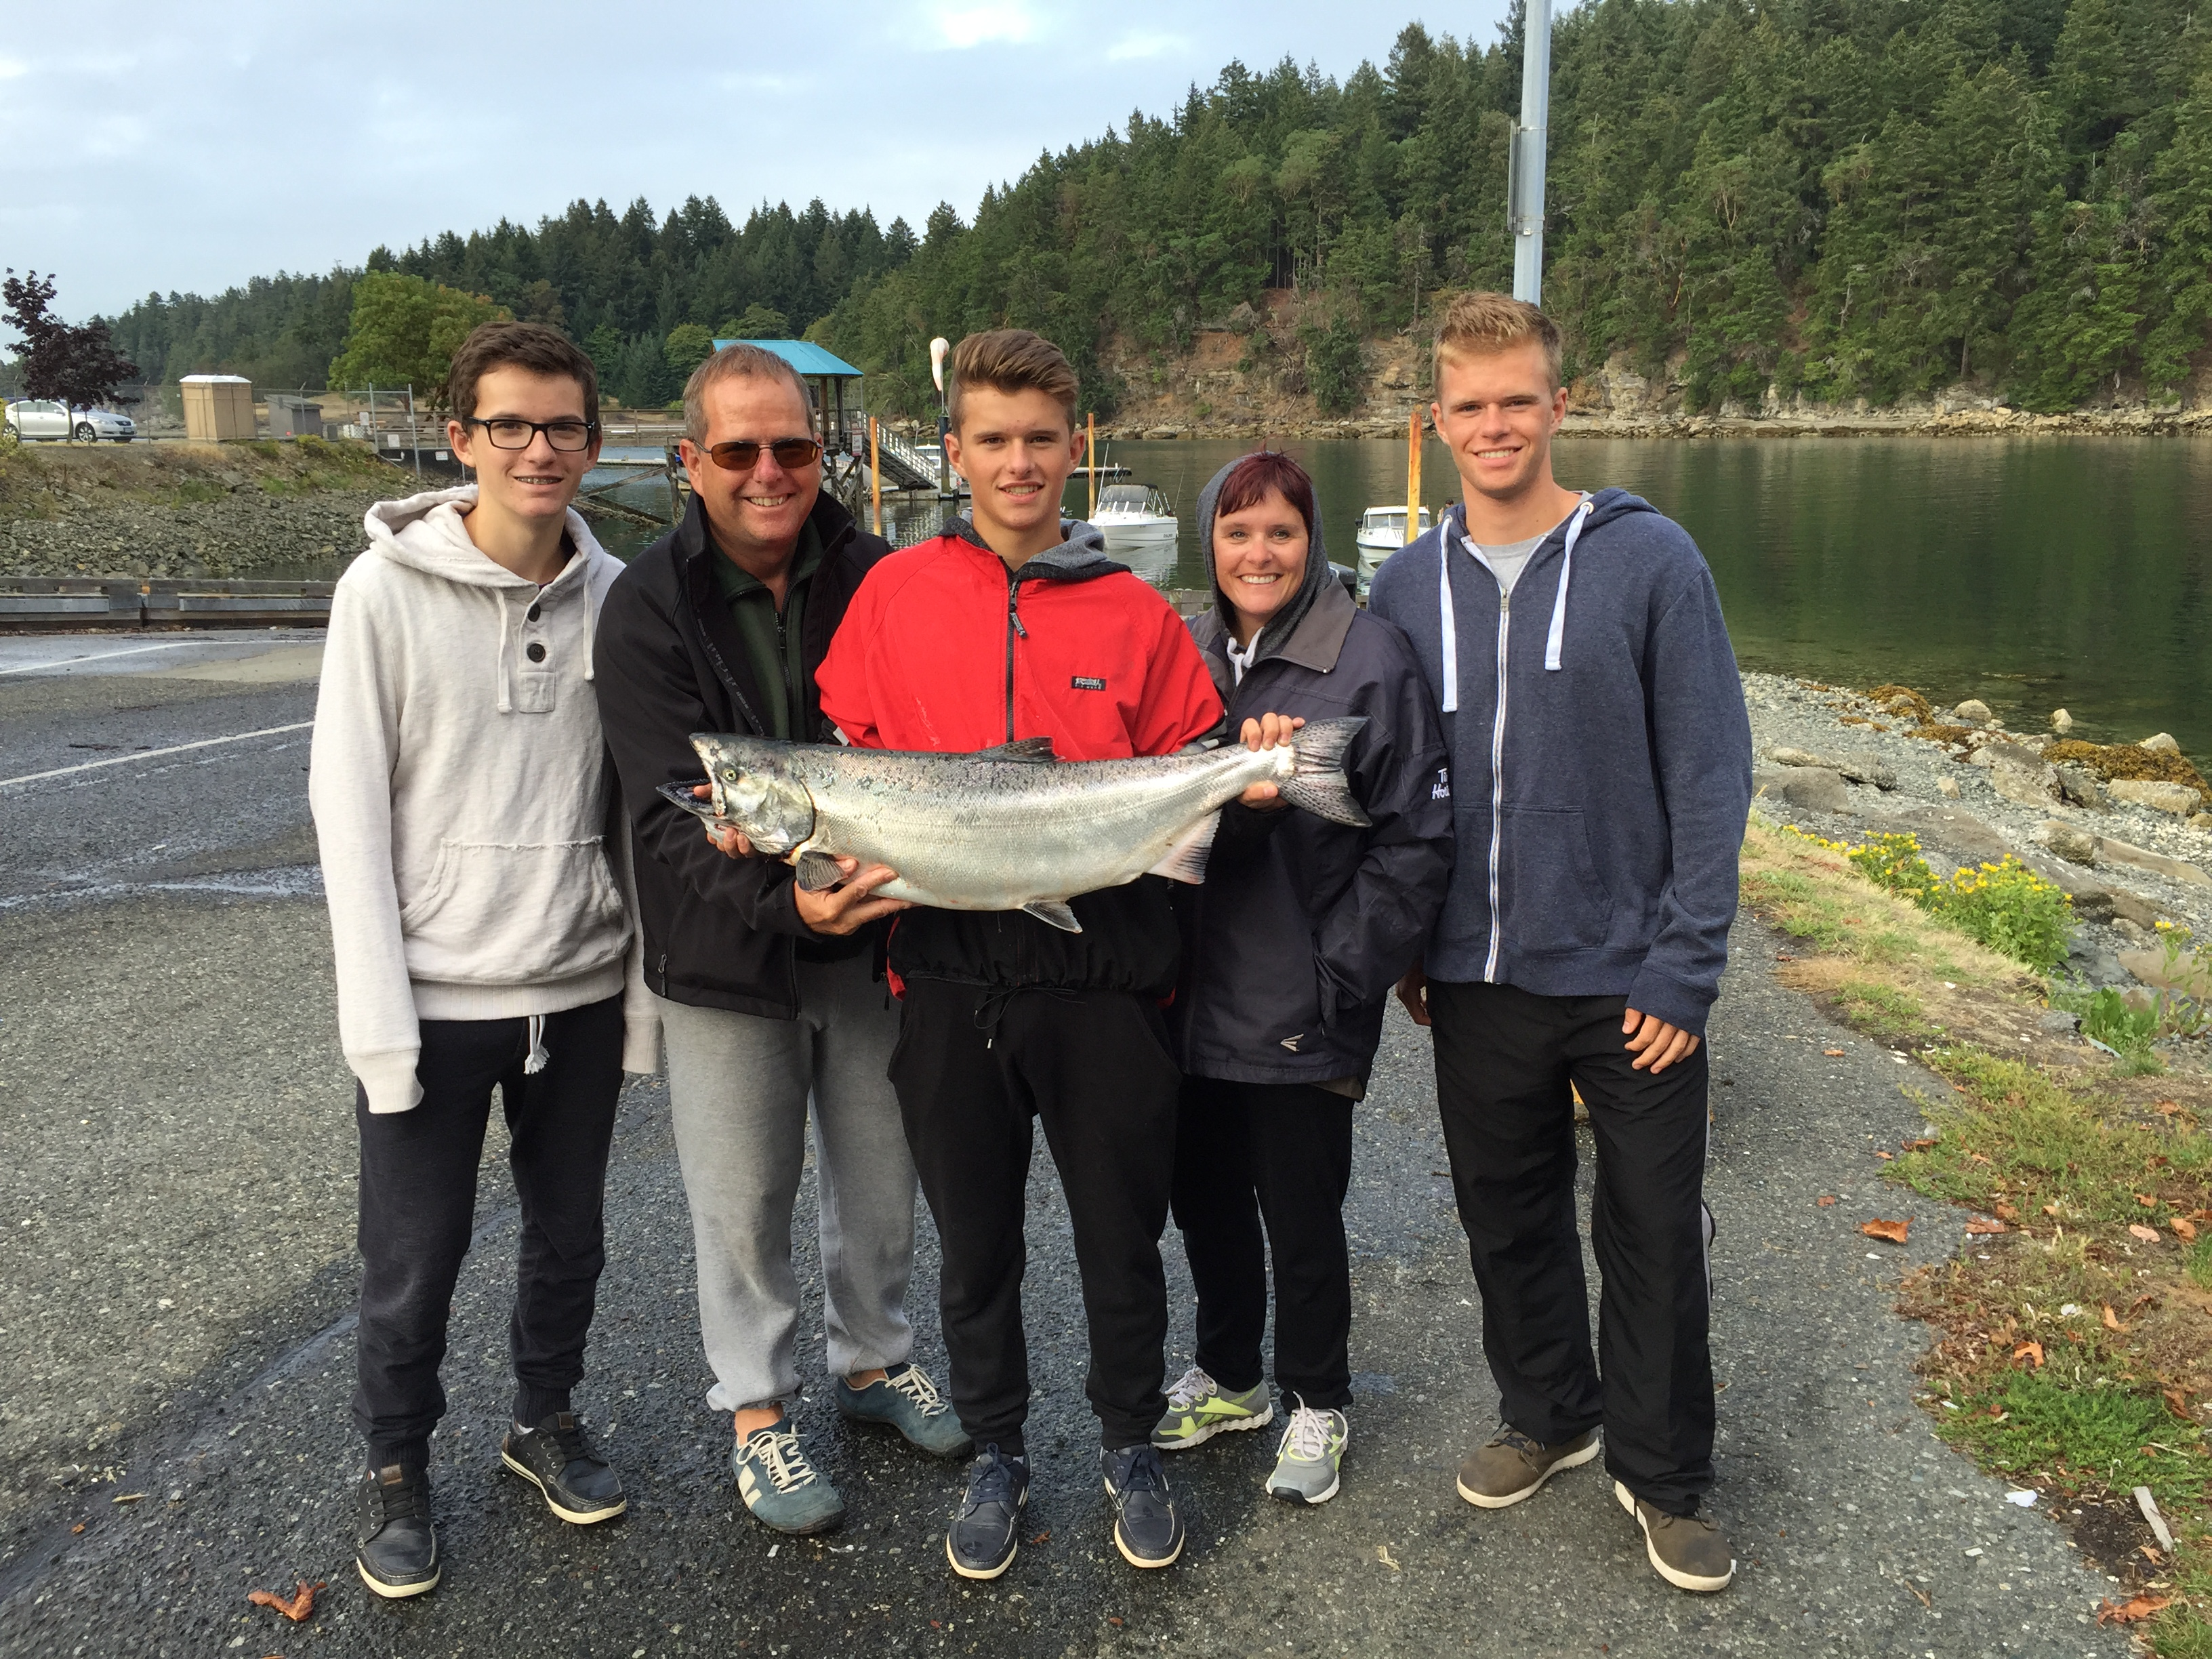 Nanaimo Fishing Trips